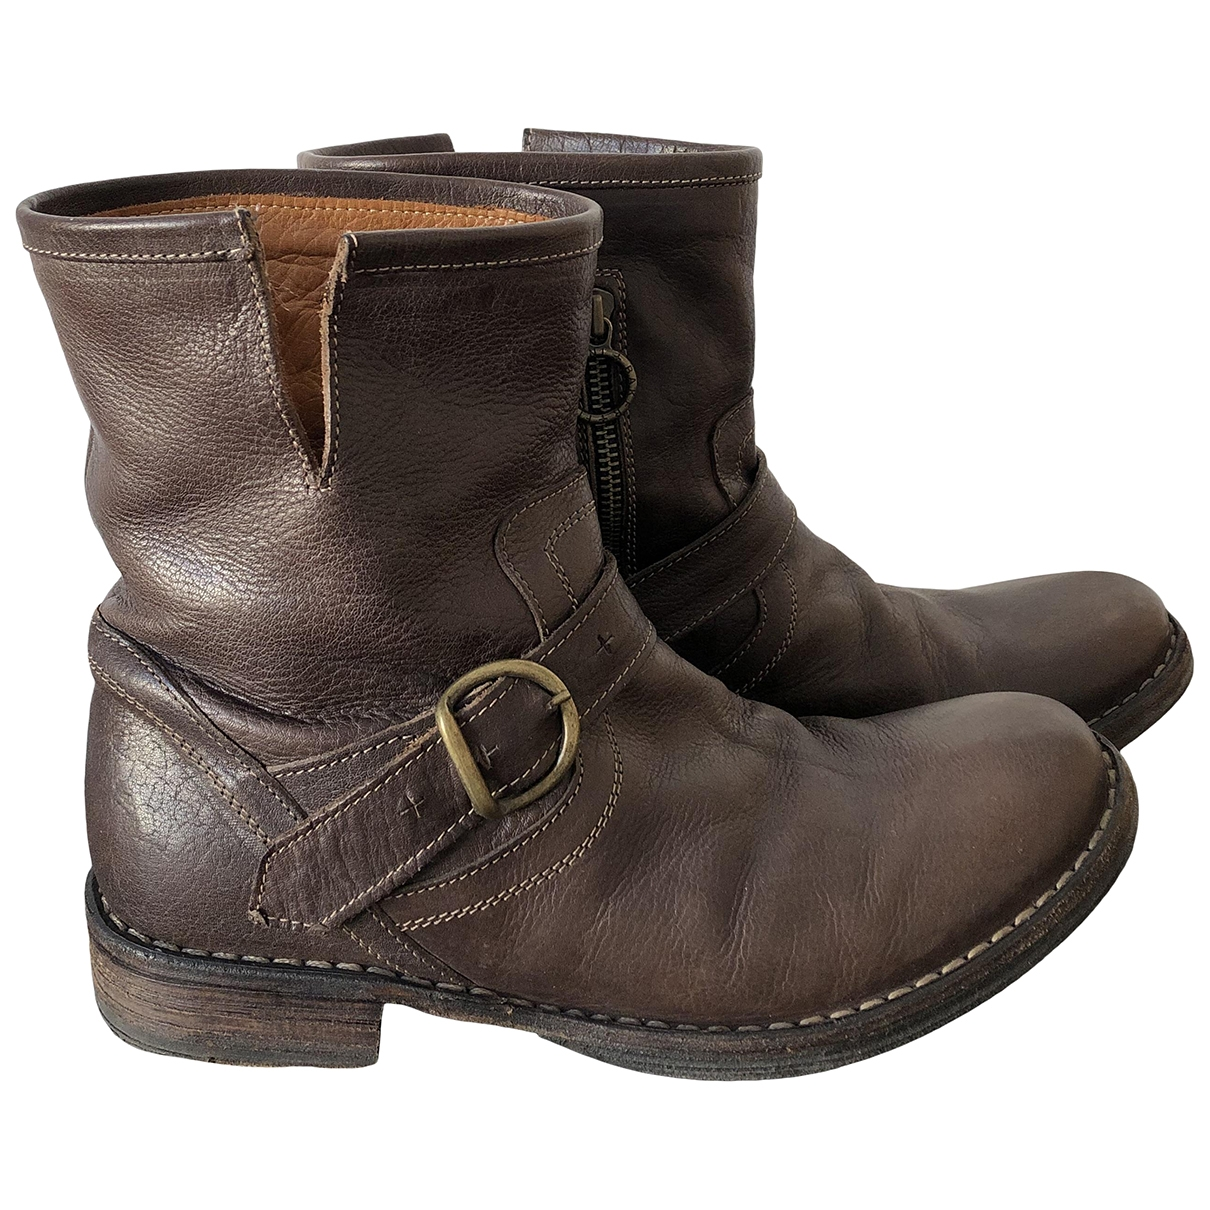 Fiorentini+baker \N Brown Leather Boots for Women 38 EU